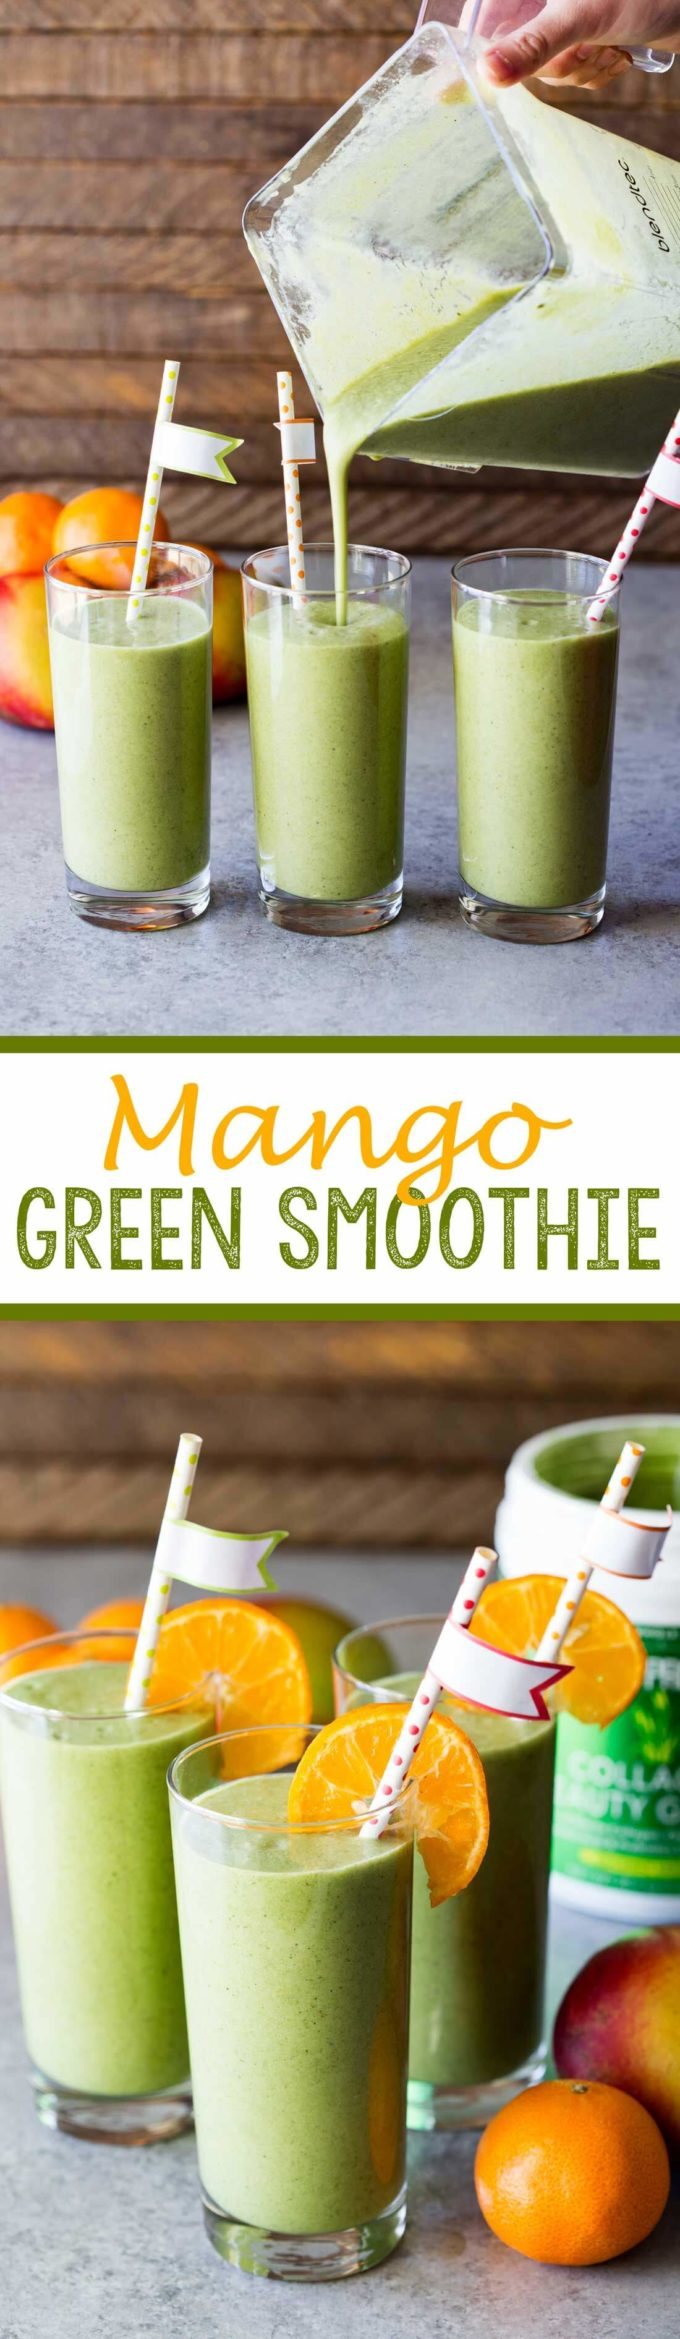 A mango green smoothie made with collagen beauty greens to help you look and feel good from the inside out!